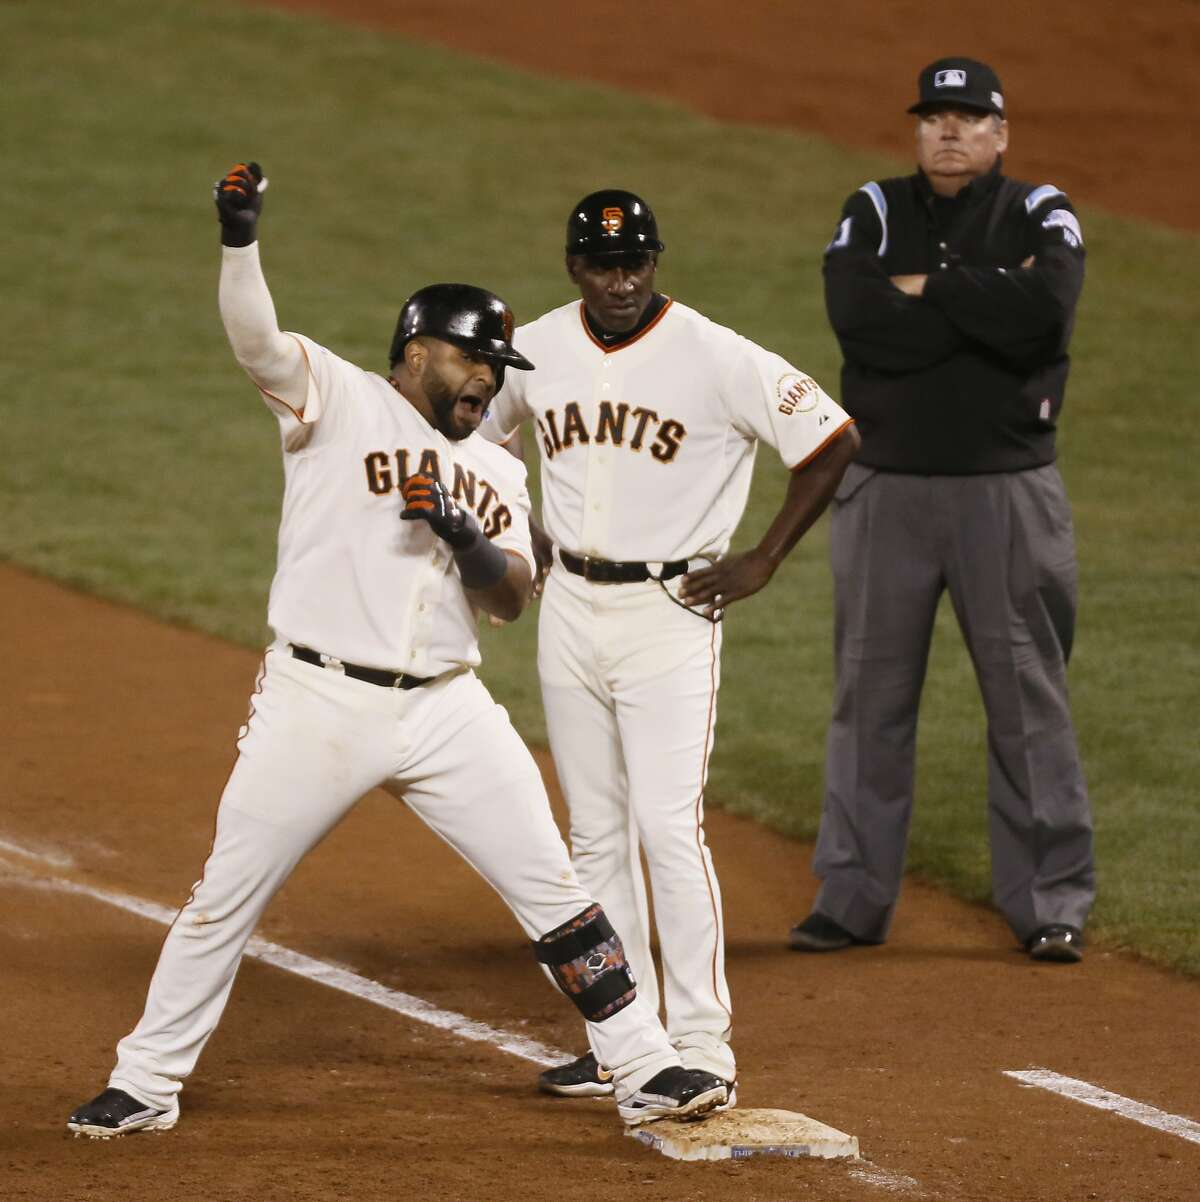 Giants Pablo Sandoval reacts at first base after hitting a sixth inning RBI during Game 4 of the World Series at AT&T Park on Saturday, Oct. 25, 2014 in San Francisco, Calif.